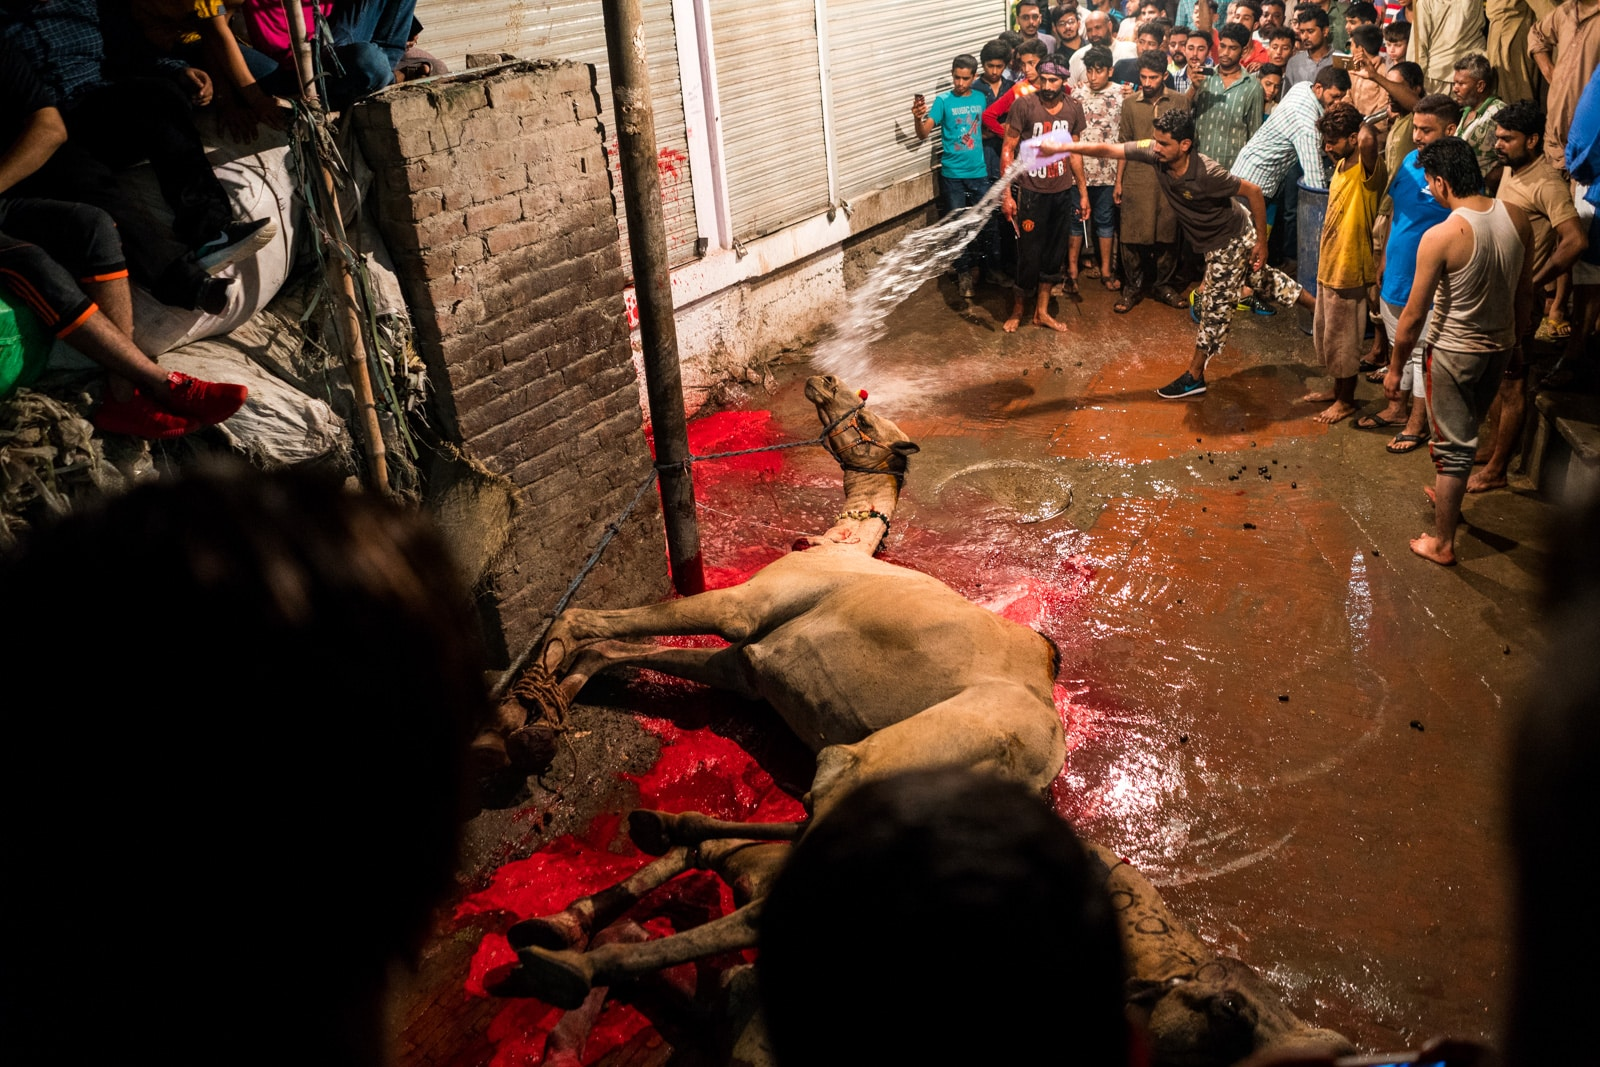 Celebrating Eid al-Adha in Lahore, Pakistan - A very bloody and almost dead camel - Lost With Purpose travel blog